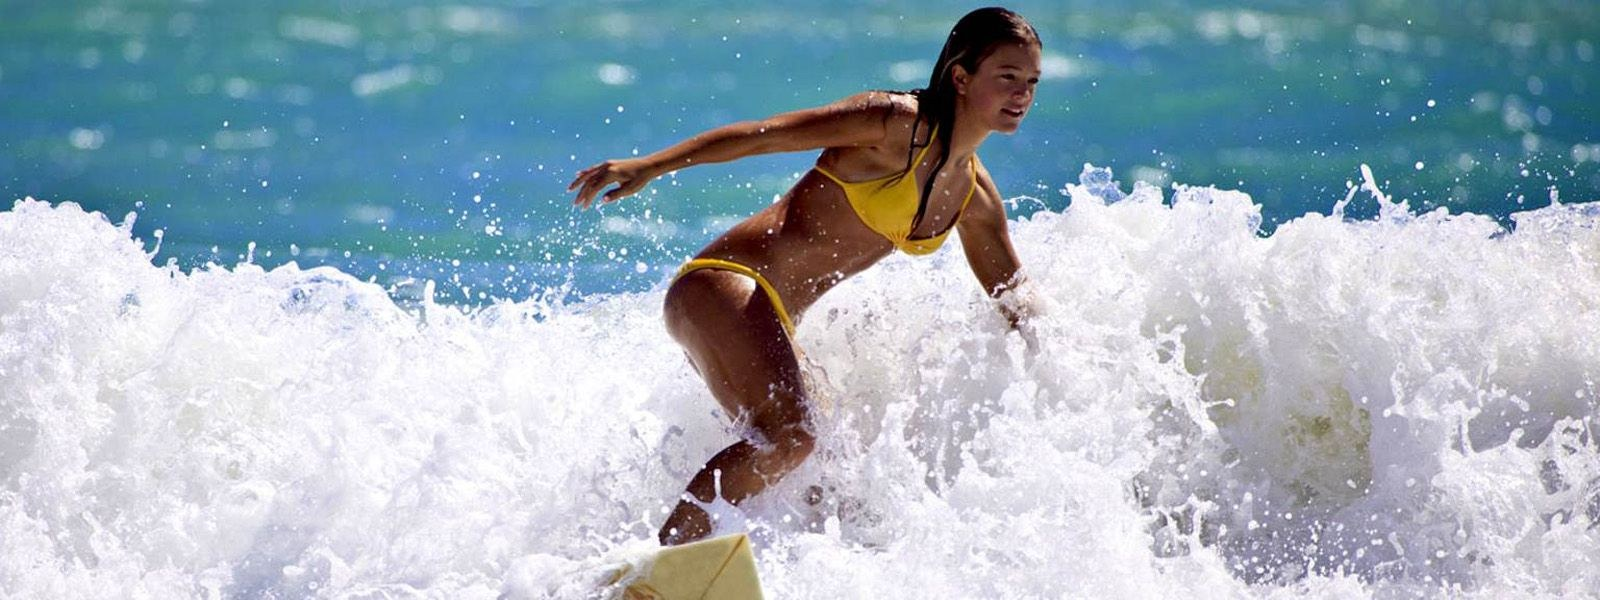 Jaco Surfing Banner2